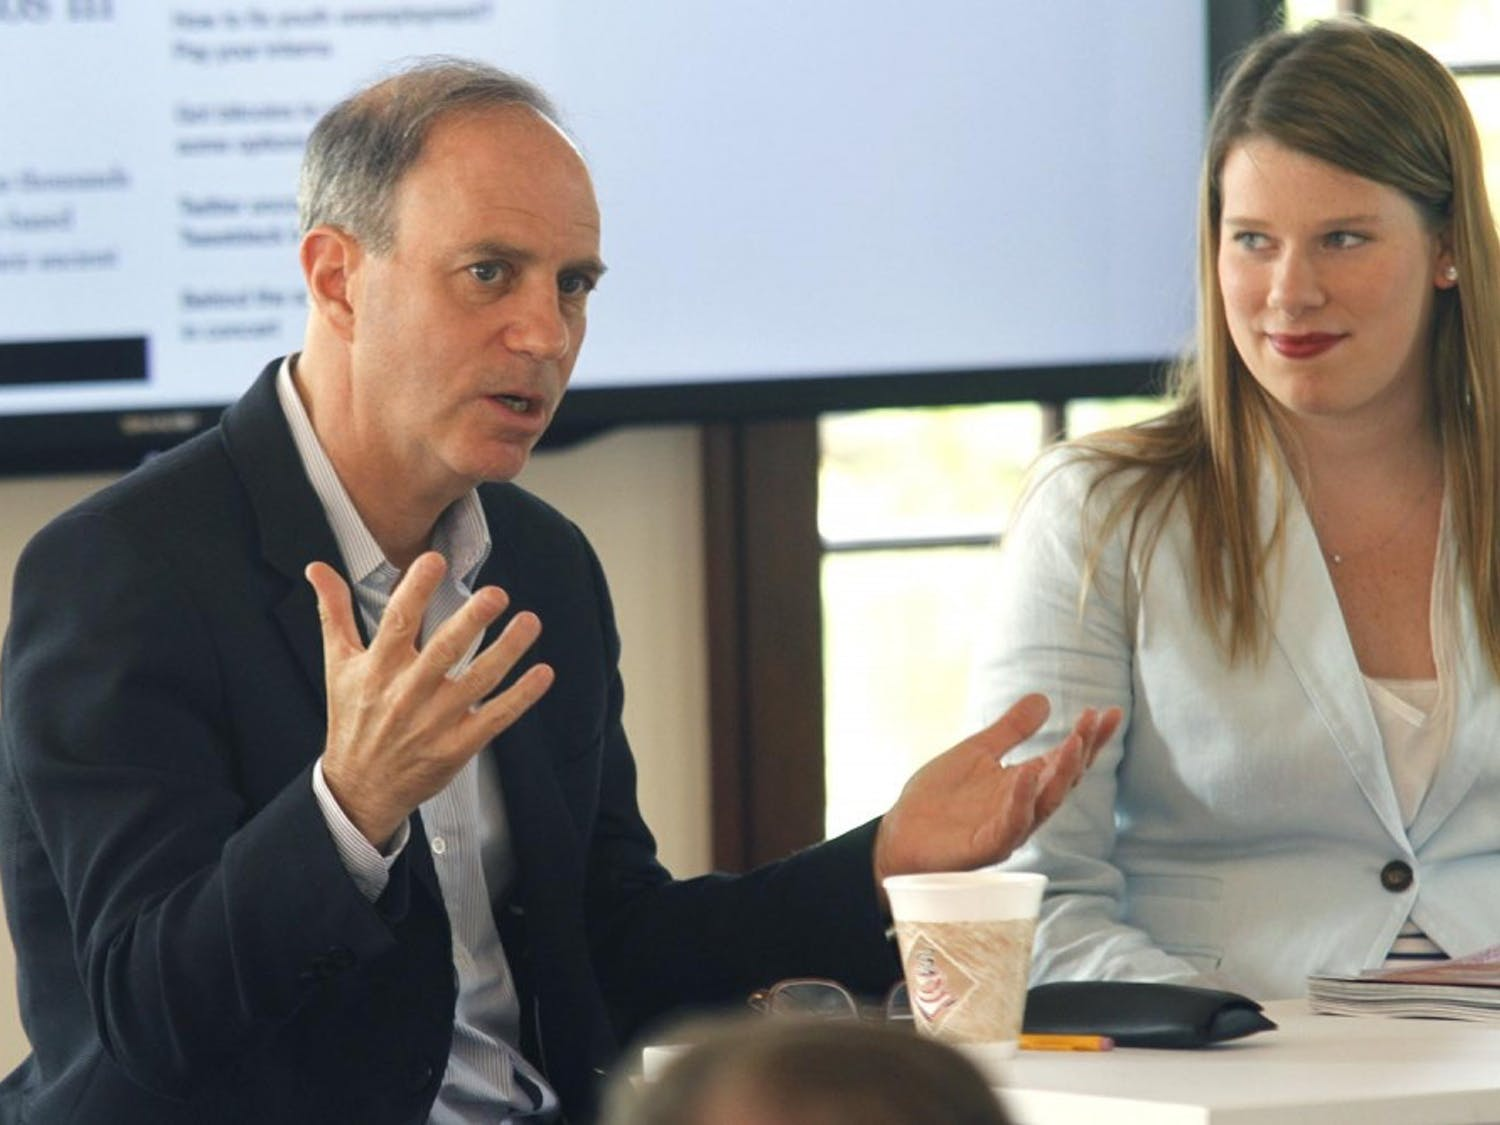 Andy Serwer, the managing editor for Fortune magazine, spoke in Carroll Hall on Wednesday afternoon. The event was hosted by the Journalism and Public Policy departments.